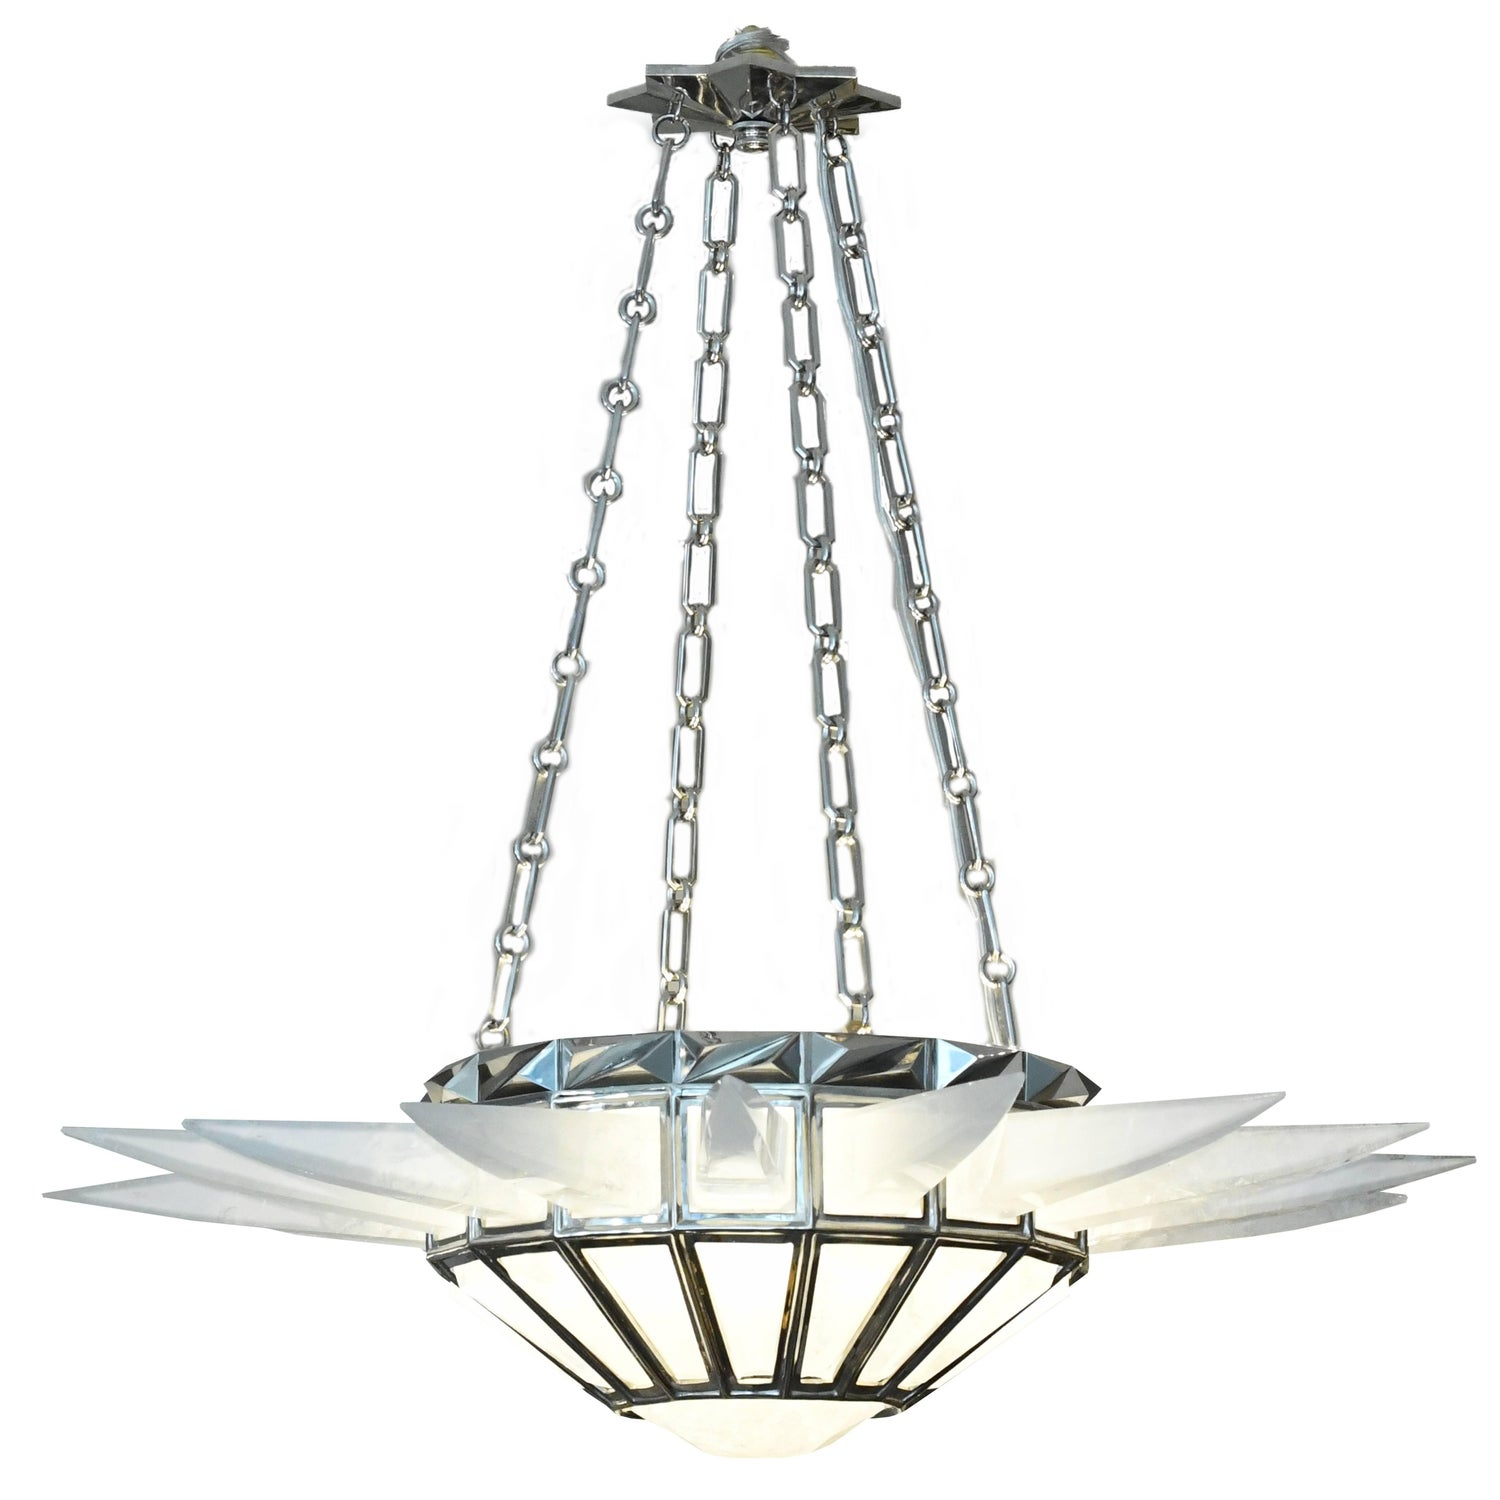 Contemporary Rock Crystal Quartz Chandelier For Sale at 1stdibs